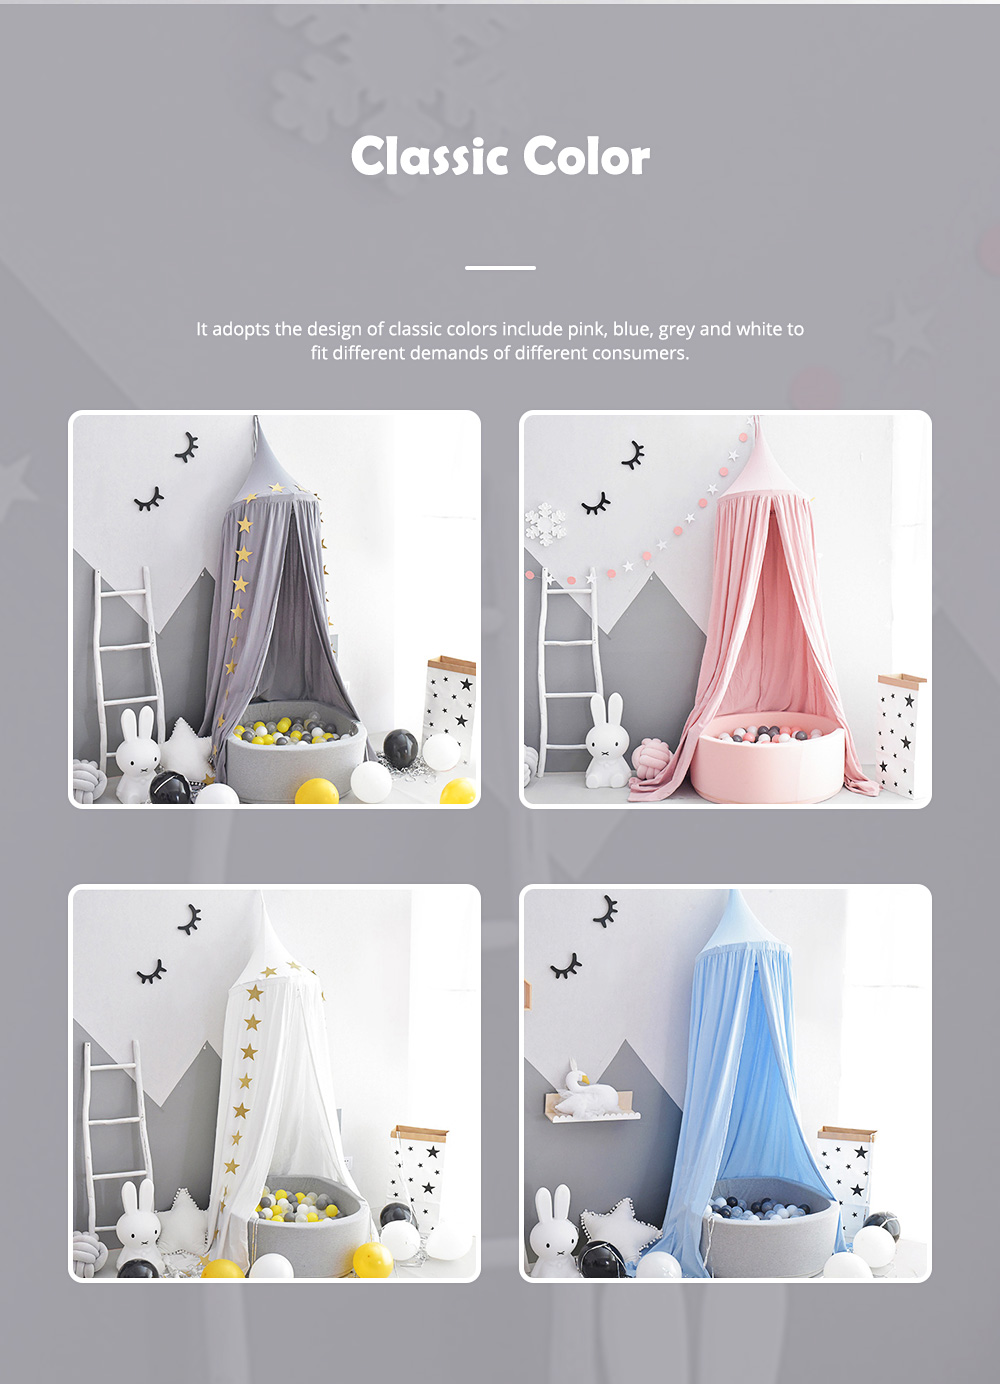 Lovely Cloth Play House Dome Veil for 0-2 Year's Old Baby Classic Color Top Lanyard Children's Tent 1